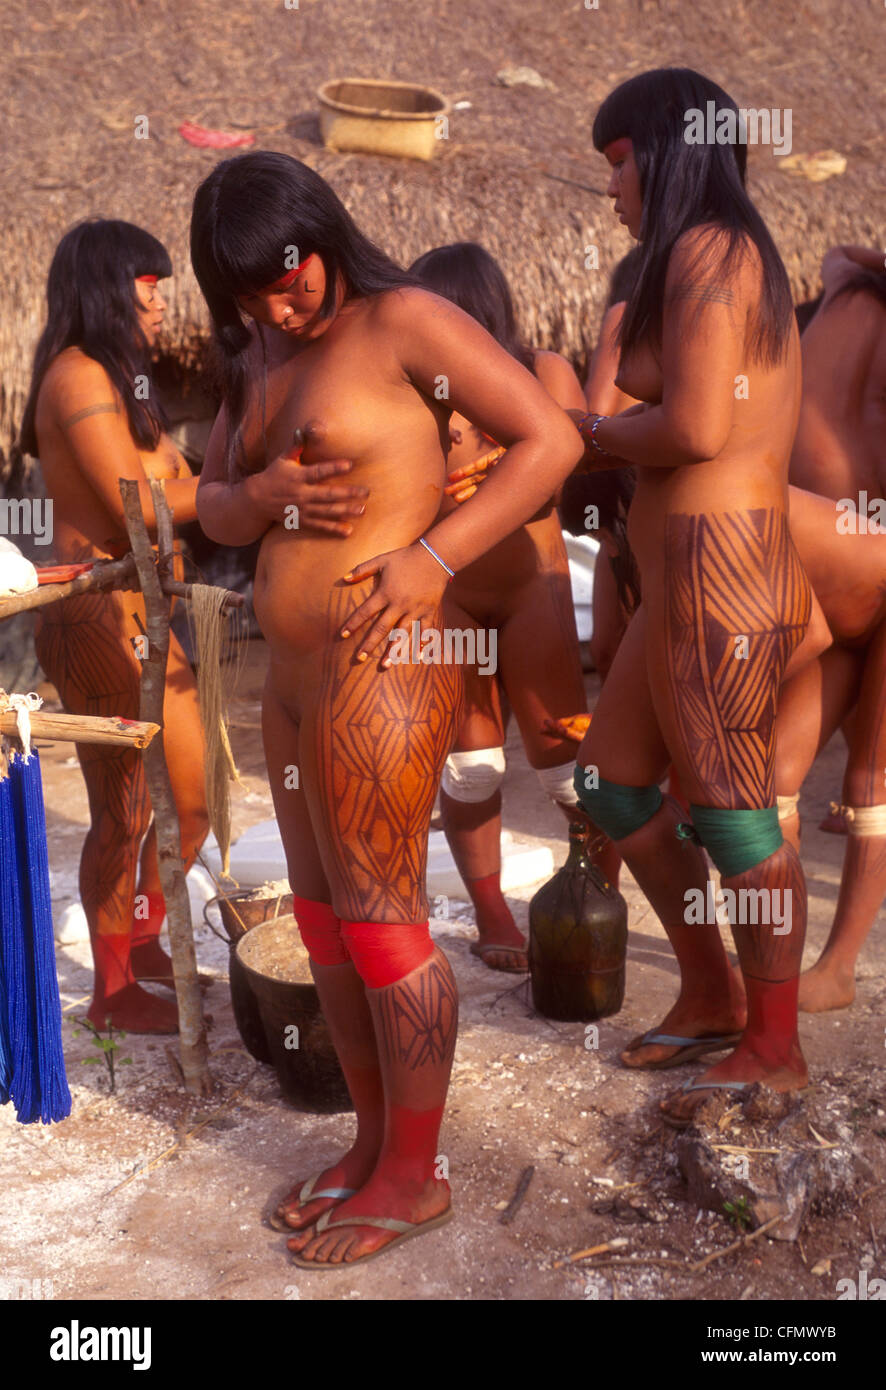 Free sex porn of tribal peoples fucked gallery